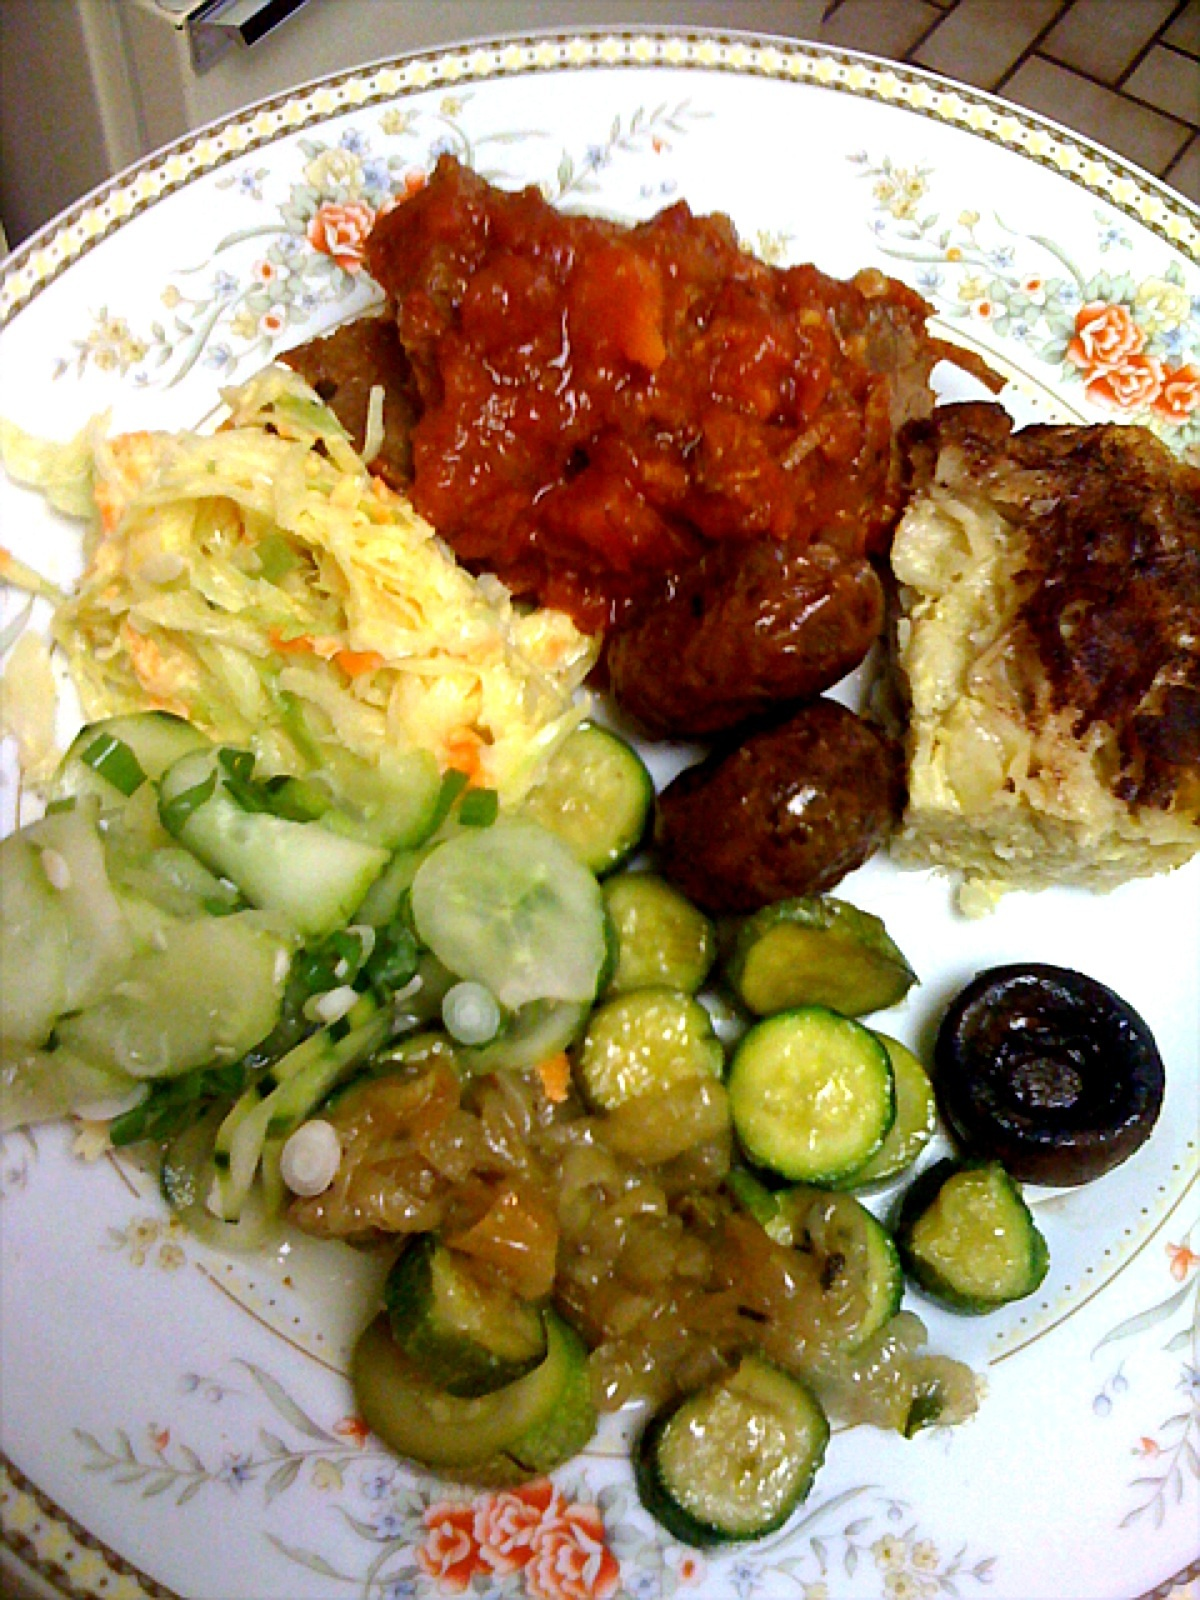 search for delicious - Home - Jewish New Year at Bubbe's House